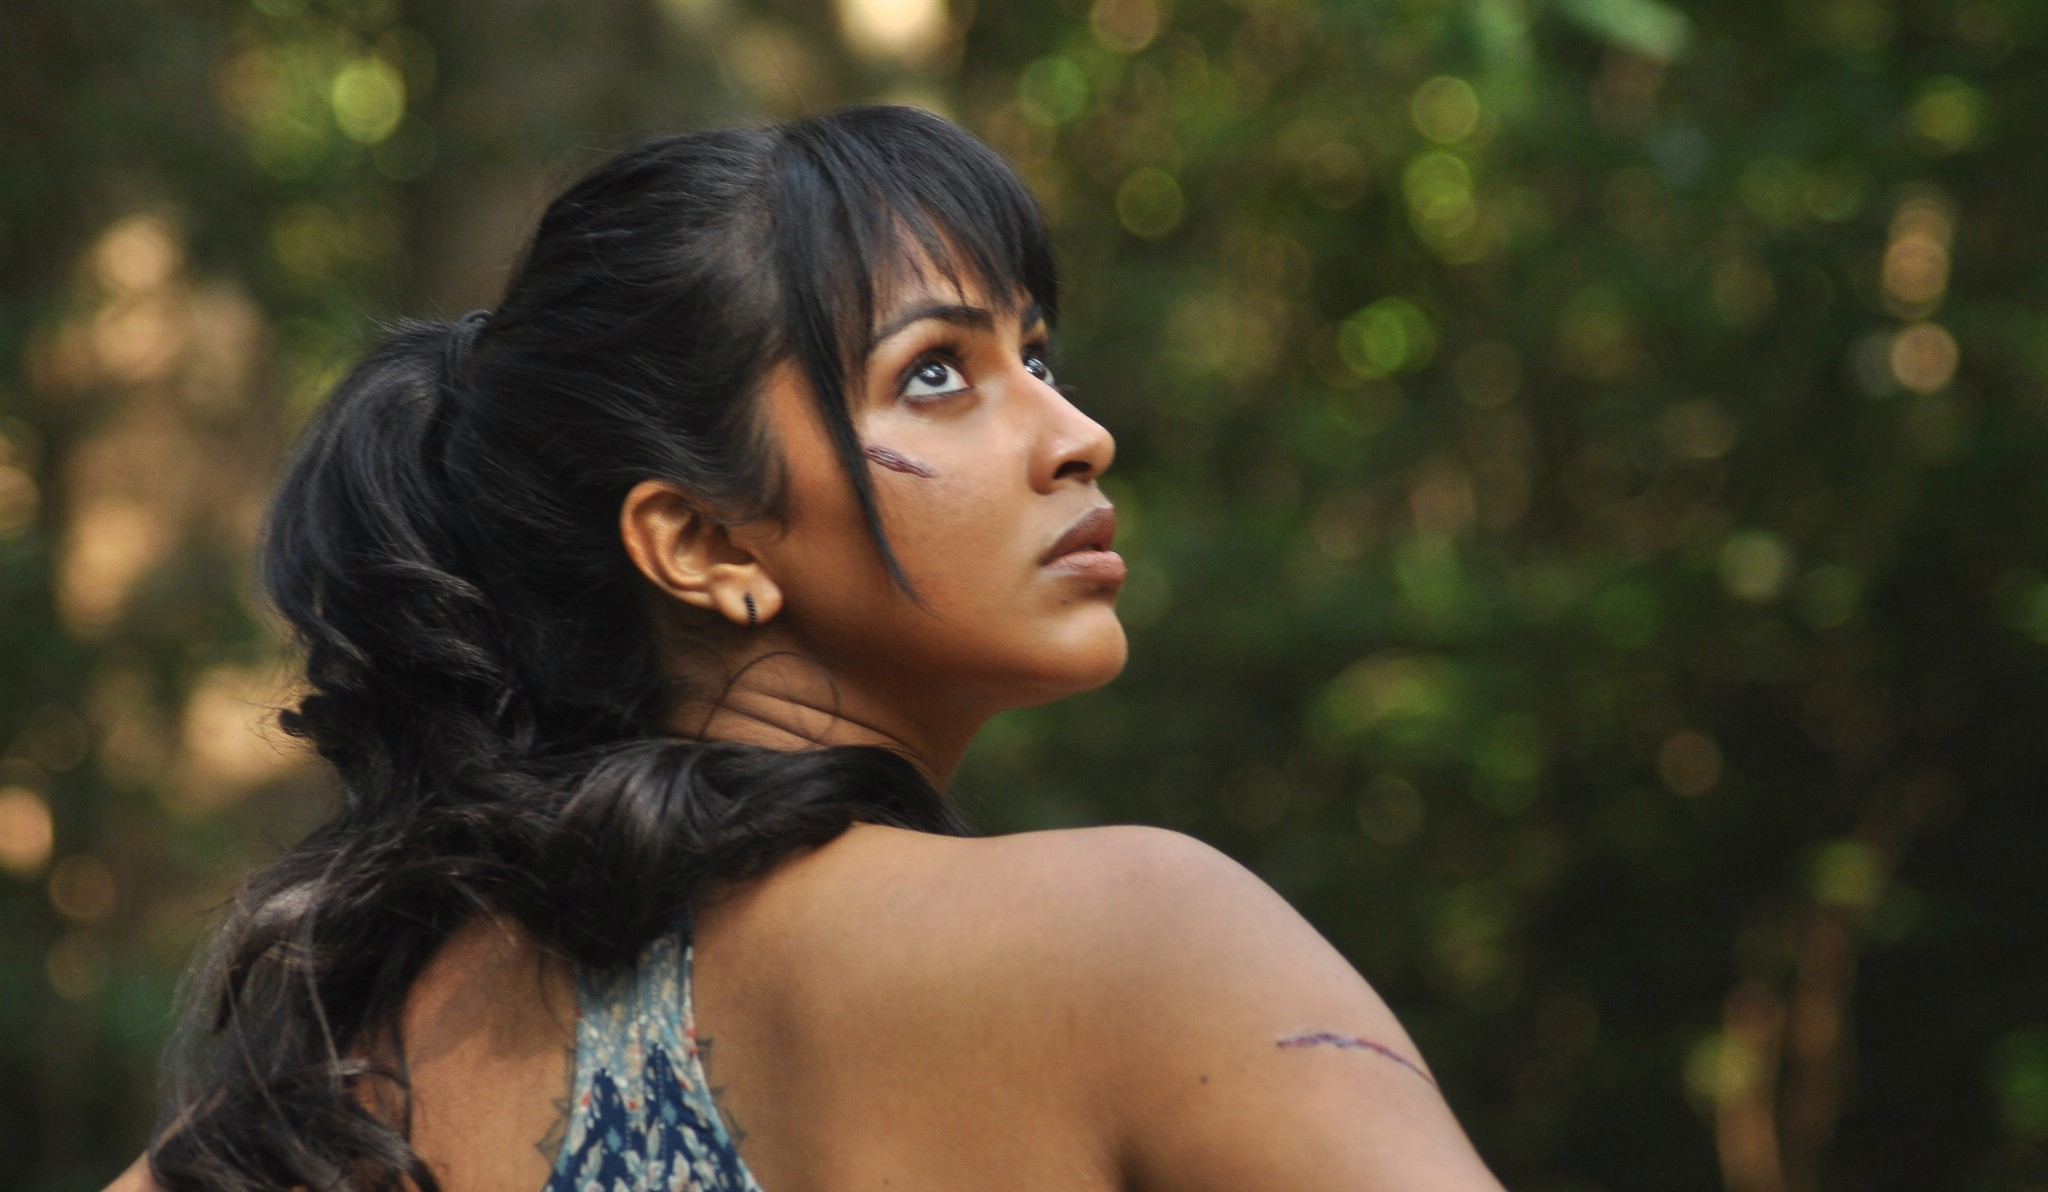 actress-amala-paul-adho-andha-paravai-pola-movie-hd-3